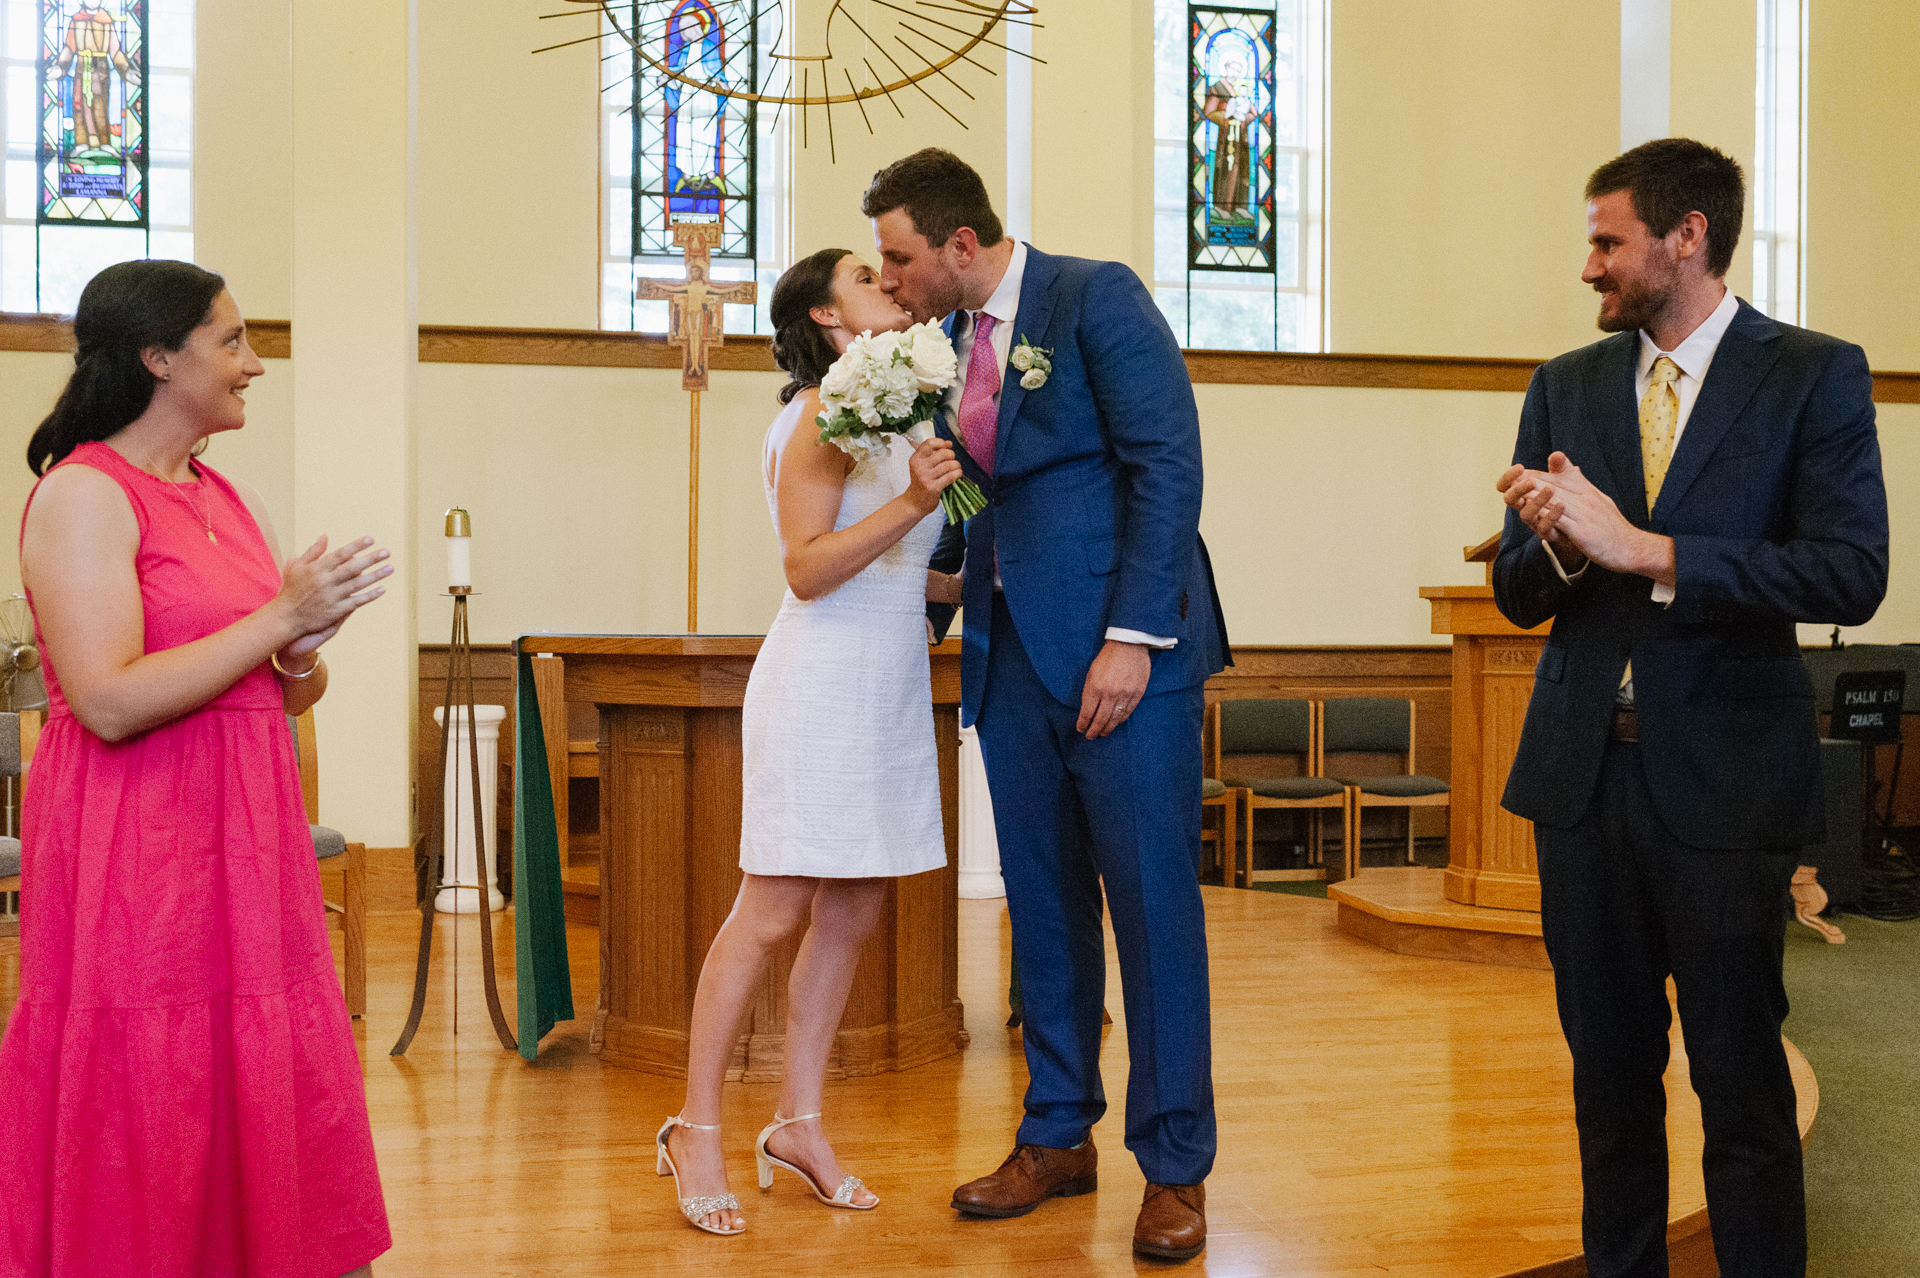 St. Mary Angels Chapel, New York Wedding Photos | The newlyweds kiss at the end of their wedding ceremony